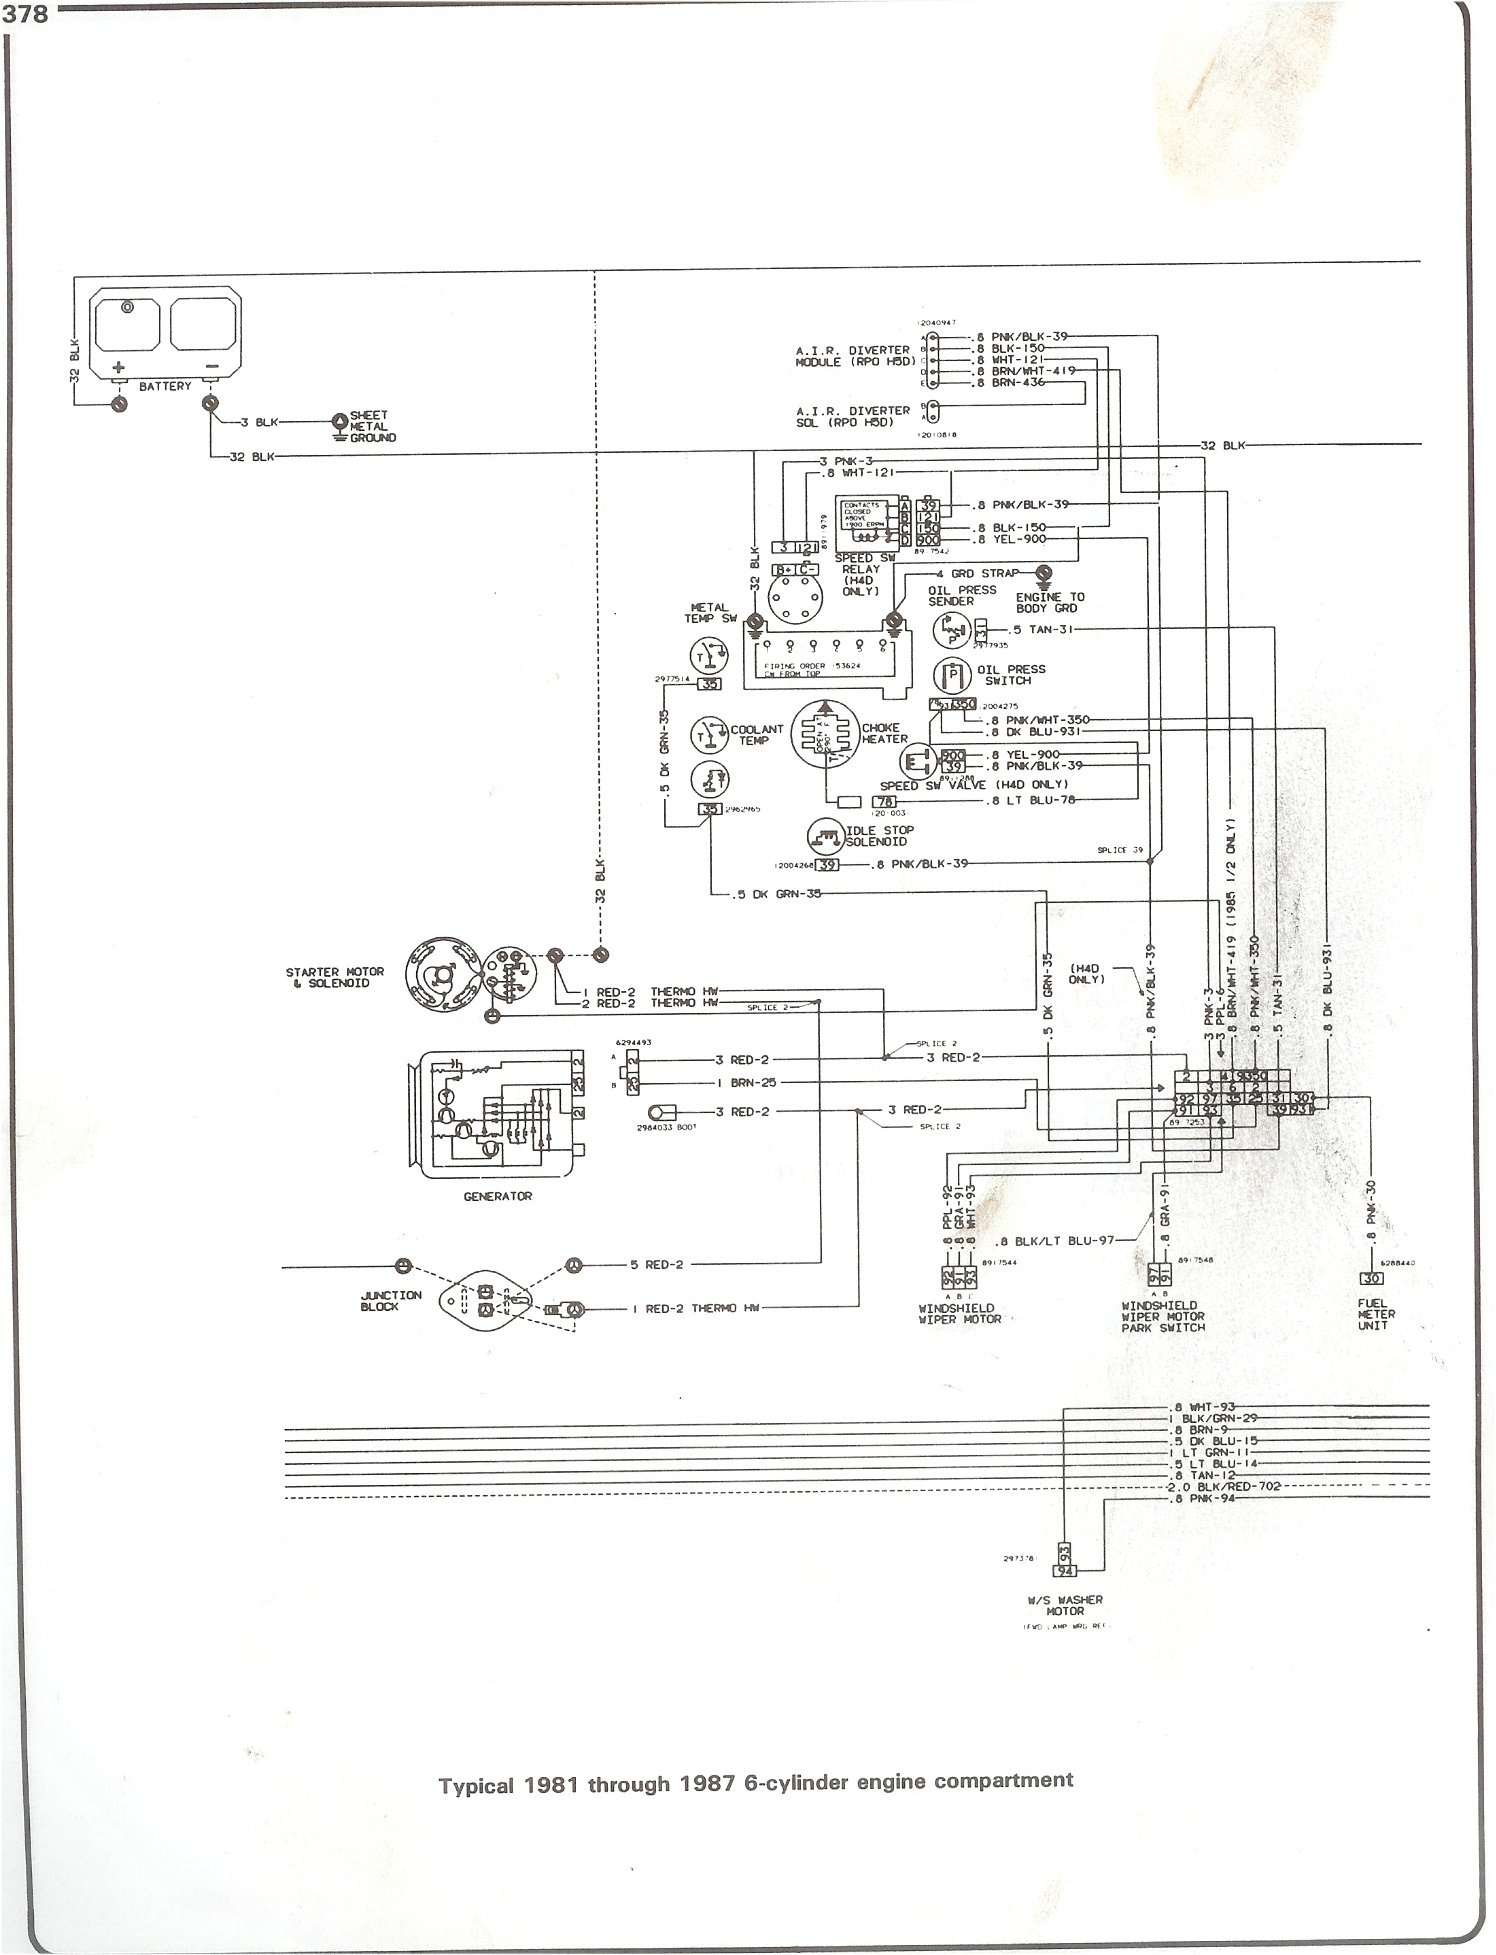 Brake Light Switch Wiring Diagram  - Blazer Forum